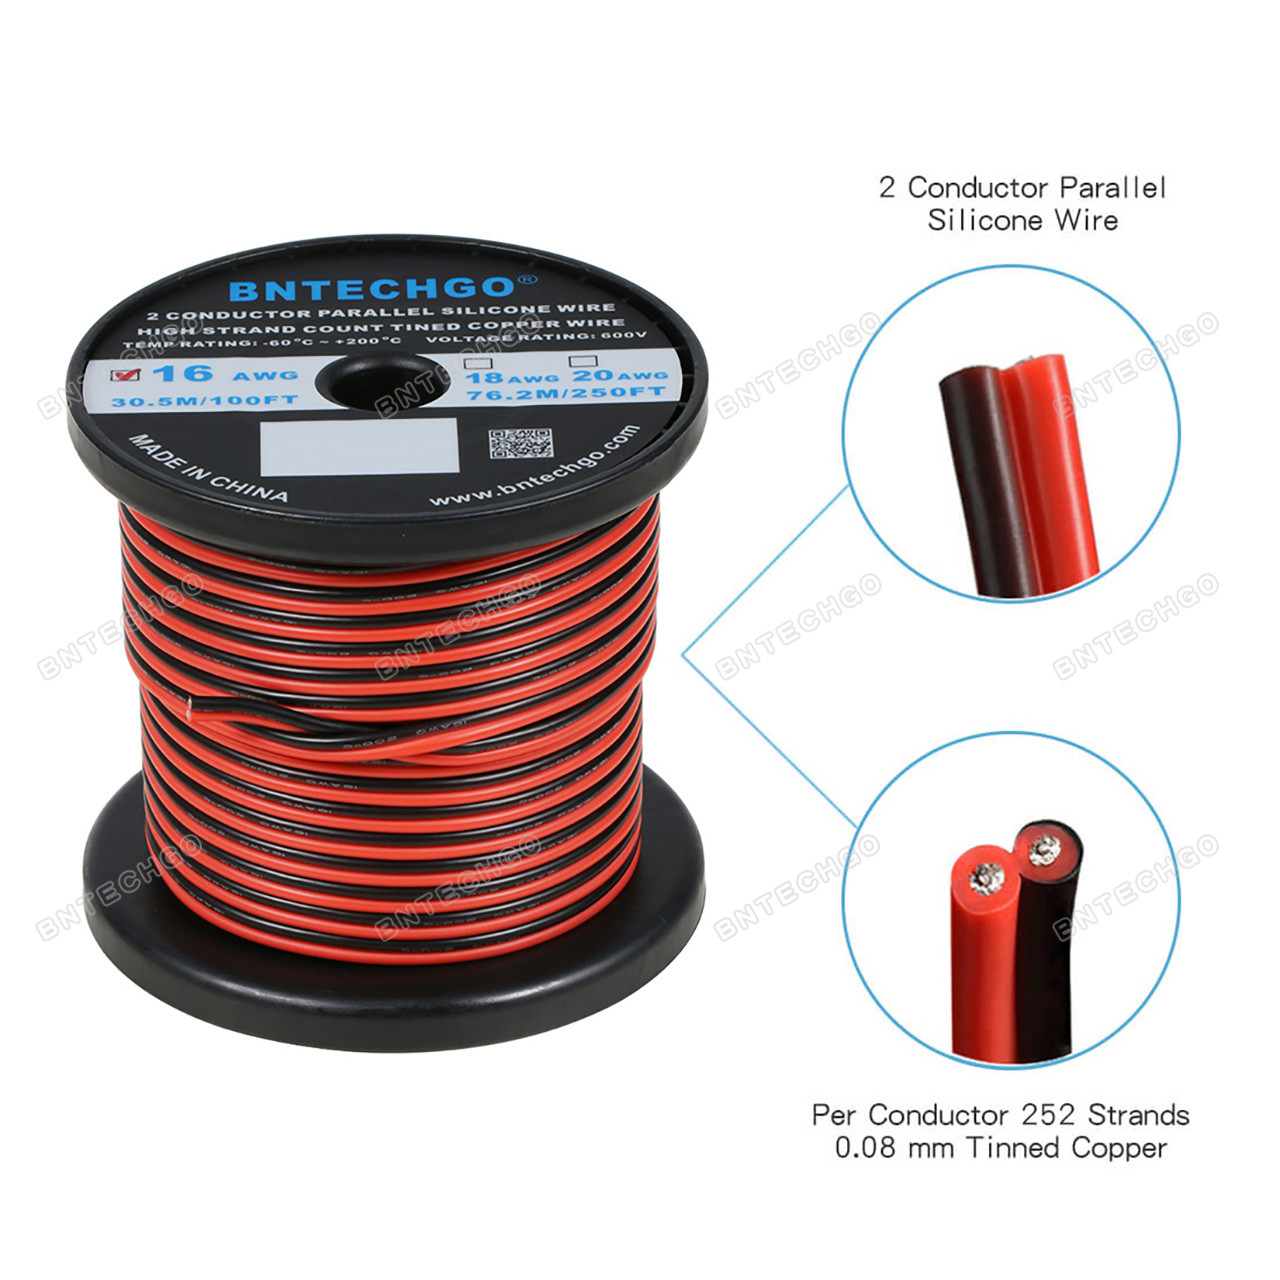 BNTECHGO 16 Gauge Silicone Wire Spool 100 ft Ultra Flexible High Temp 200 deg C 600V 16 AWG Silicone Wire 252 Strands of Tinned Copper Wire 50 ft Black and 50 ft Red Stranded Wire for Model Battery